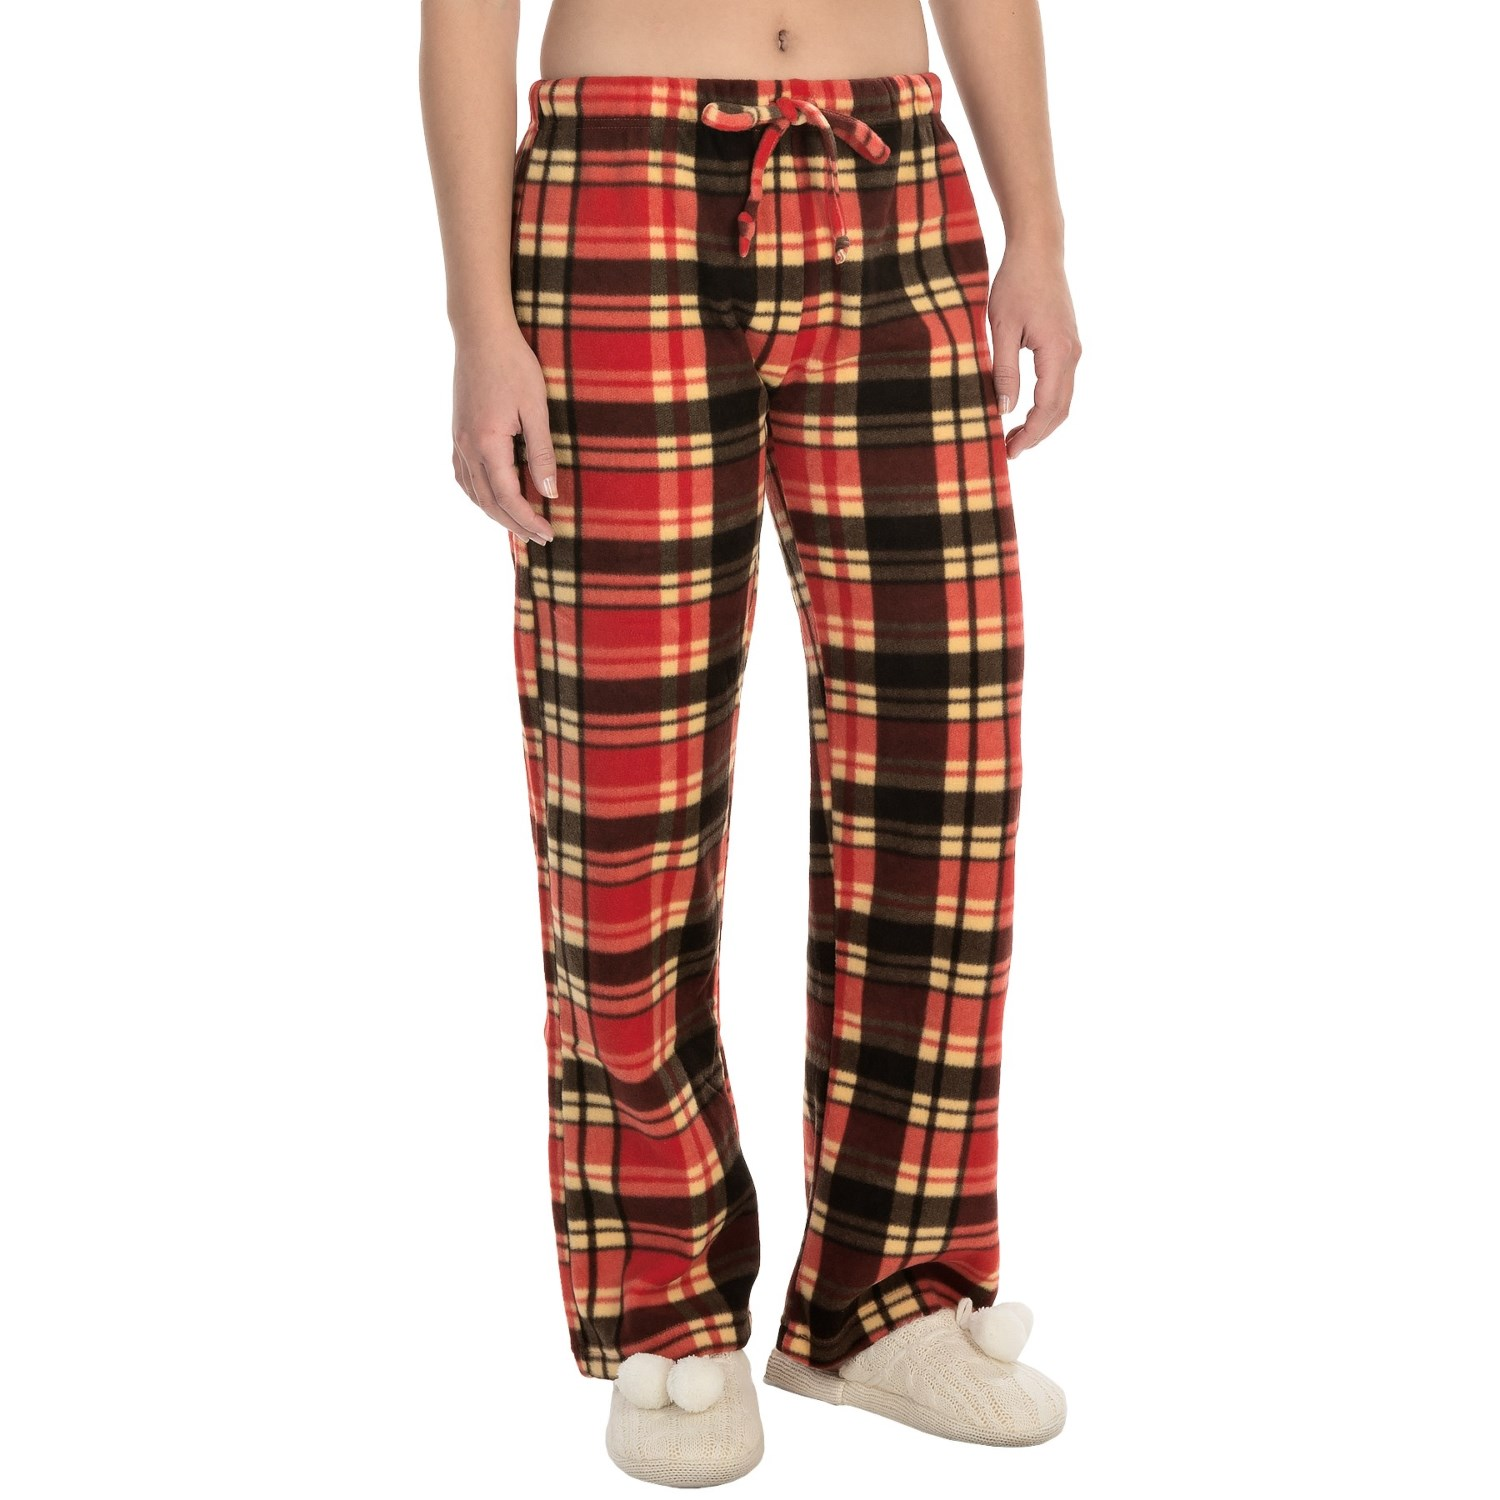 Nina Capri Polar Fleece Lounge Pants (For Women) - Save 64%